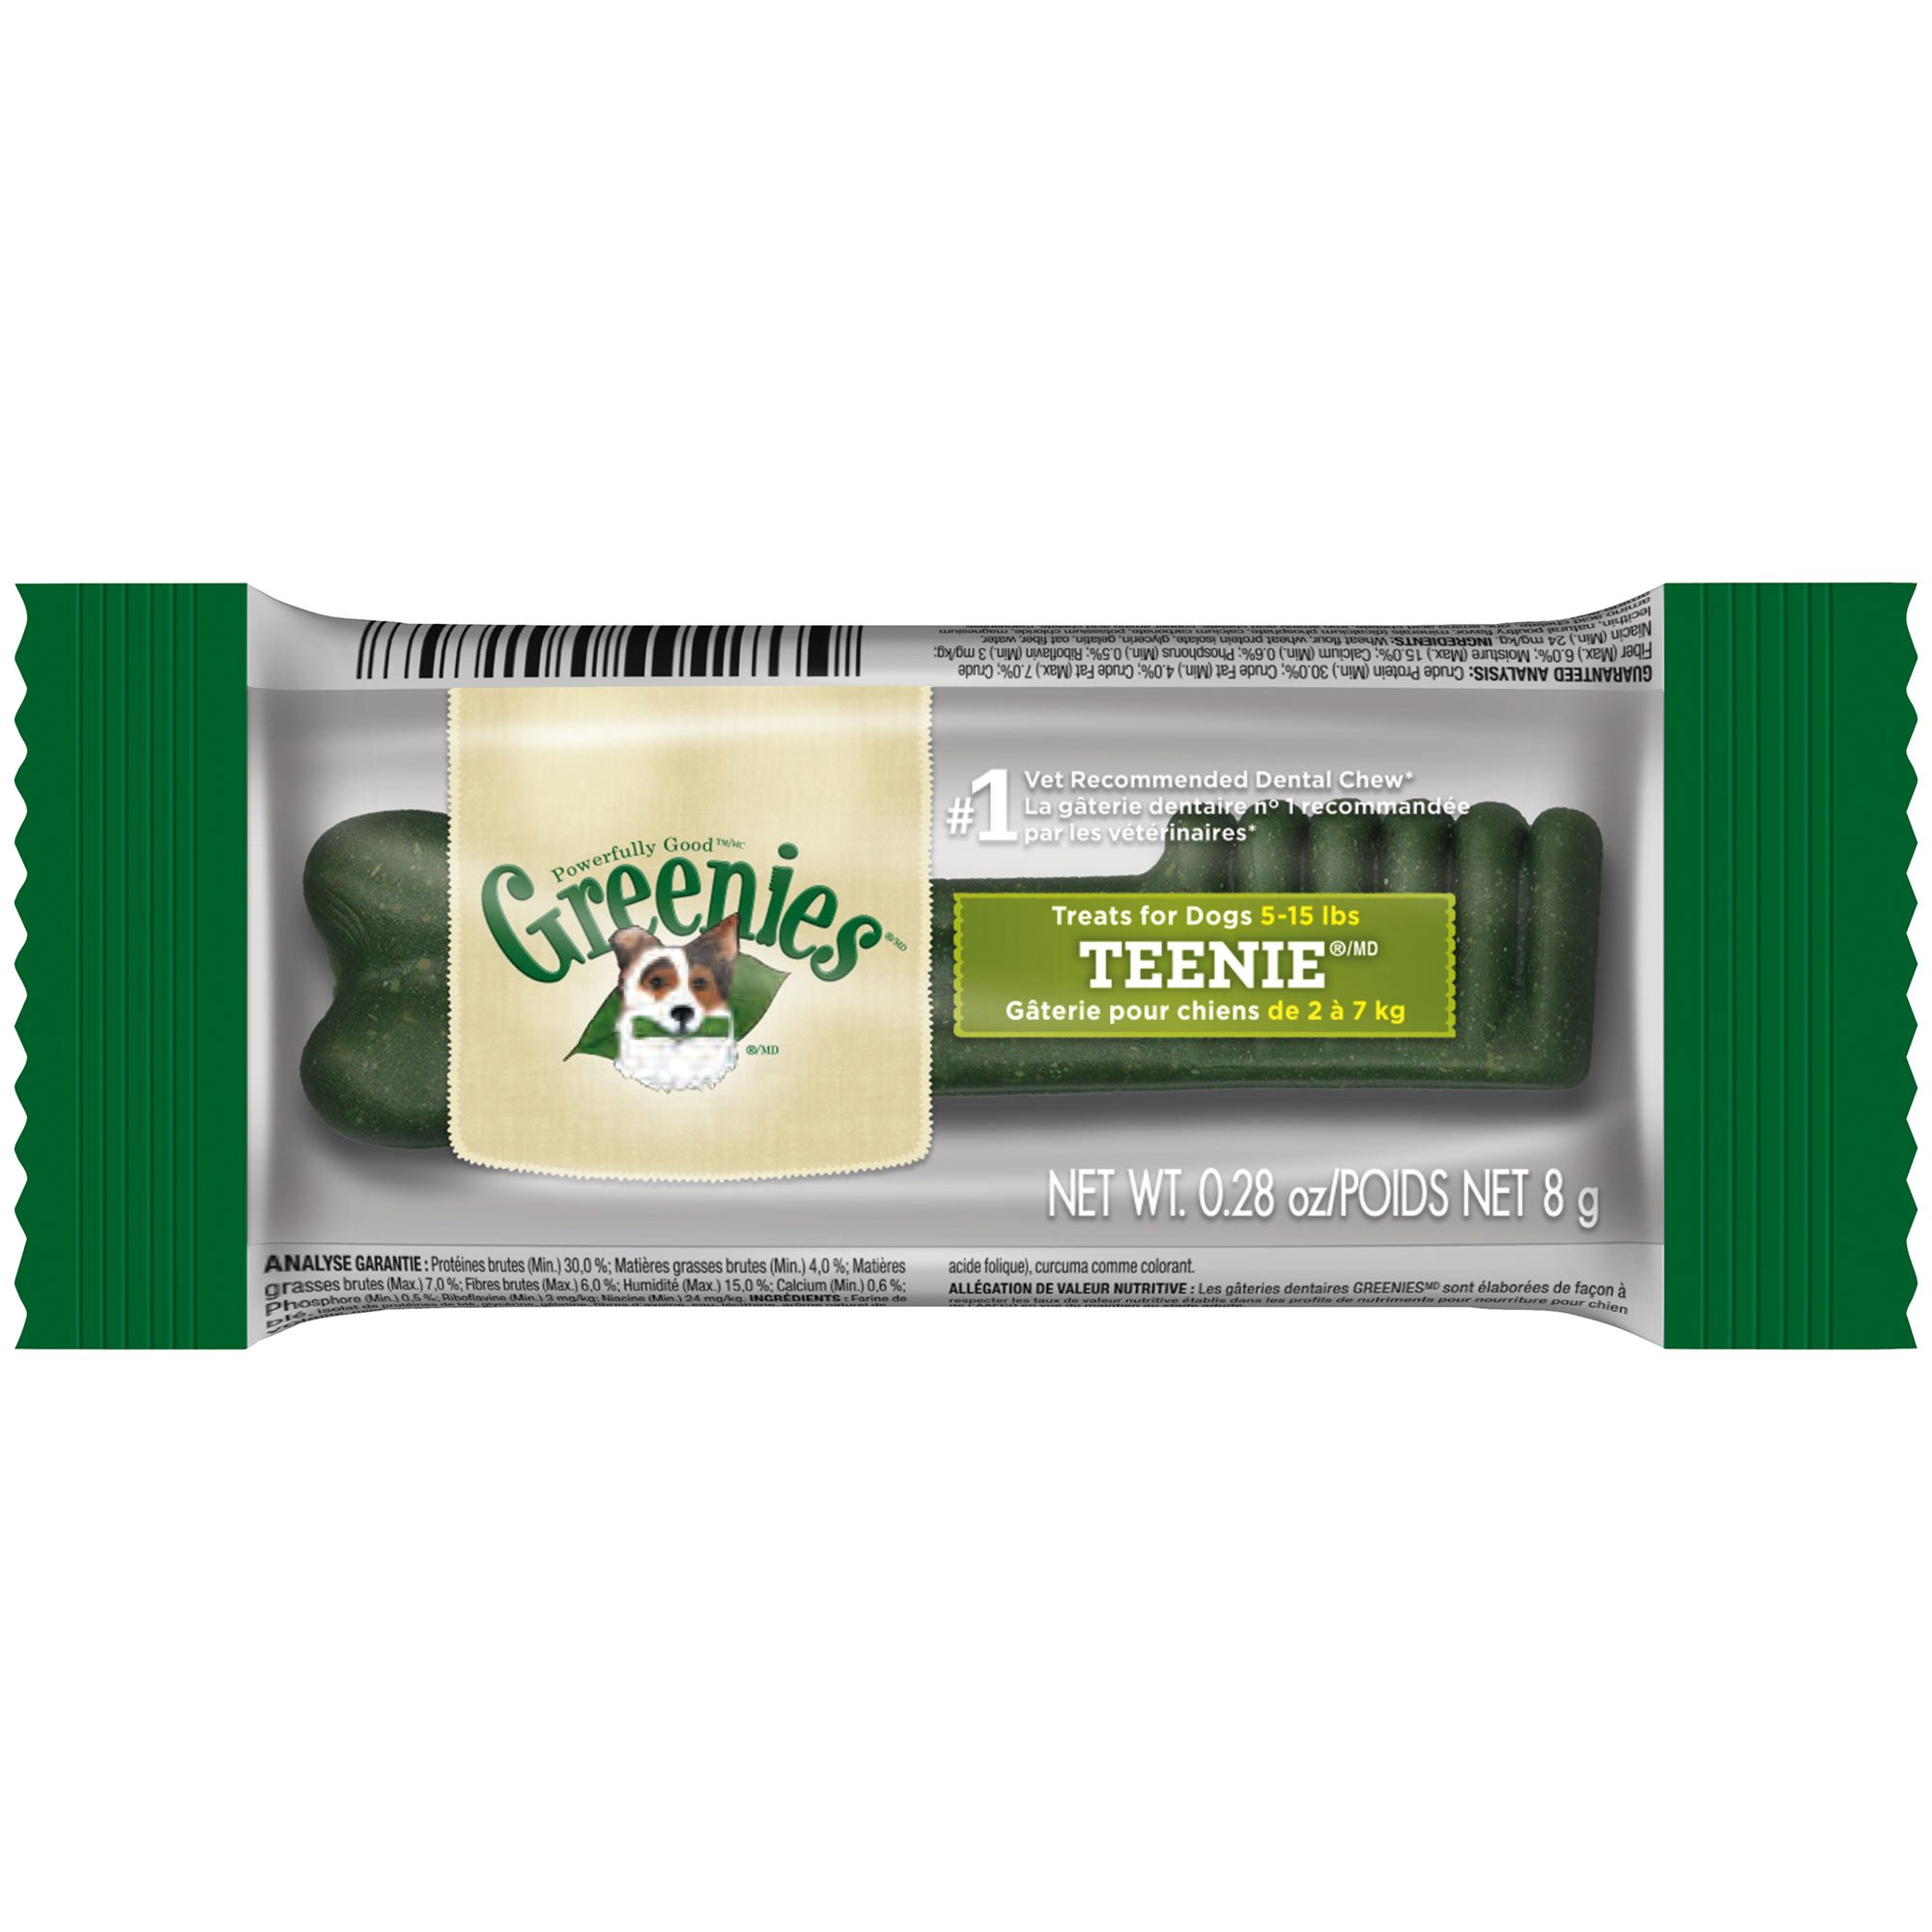 Greenies Individually Wrapped Dental Treats for Dogs